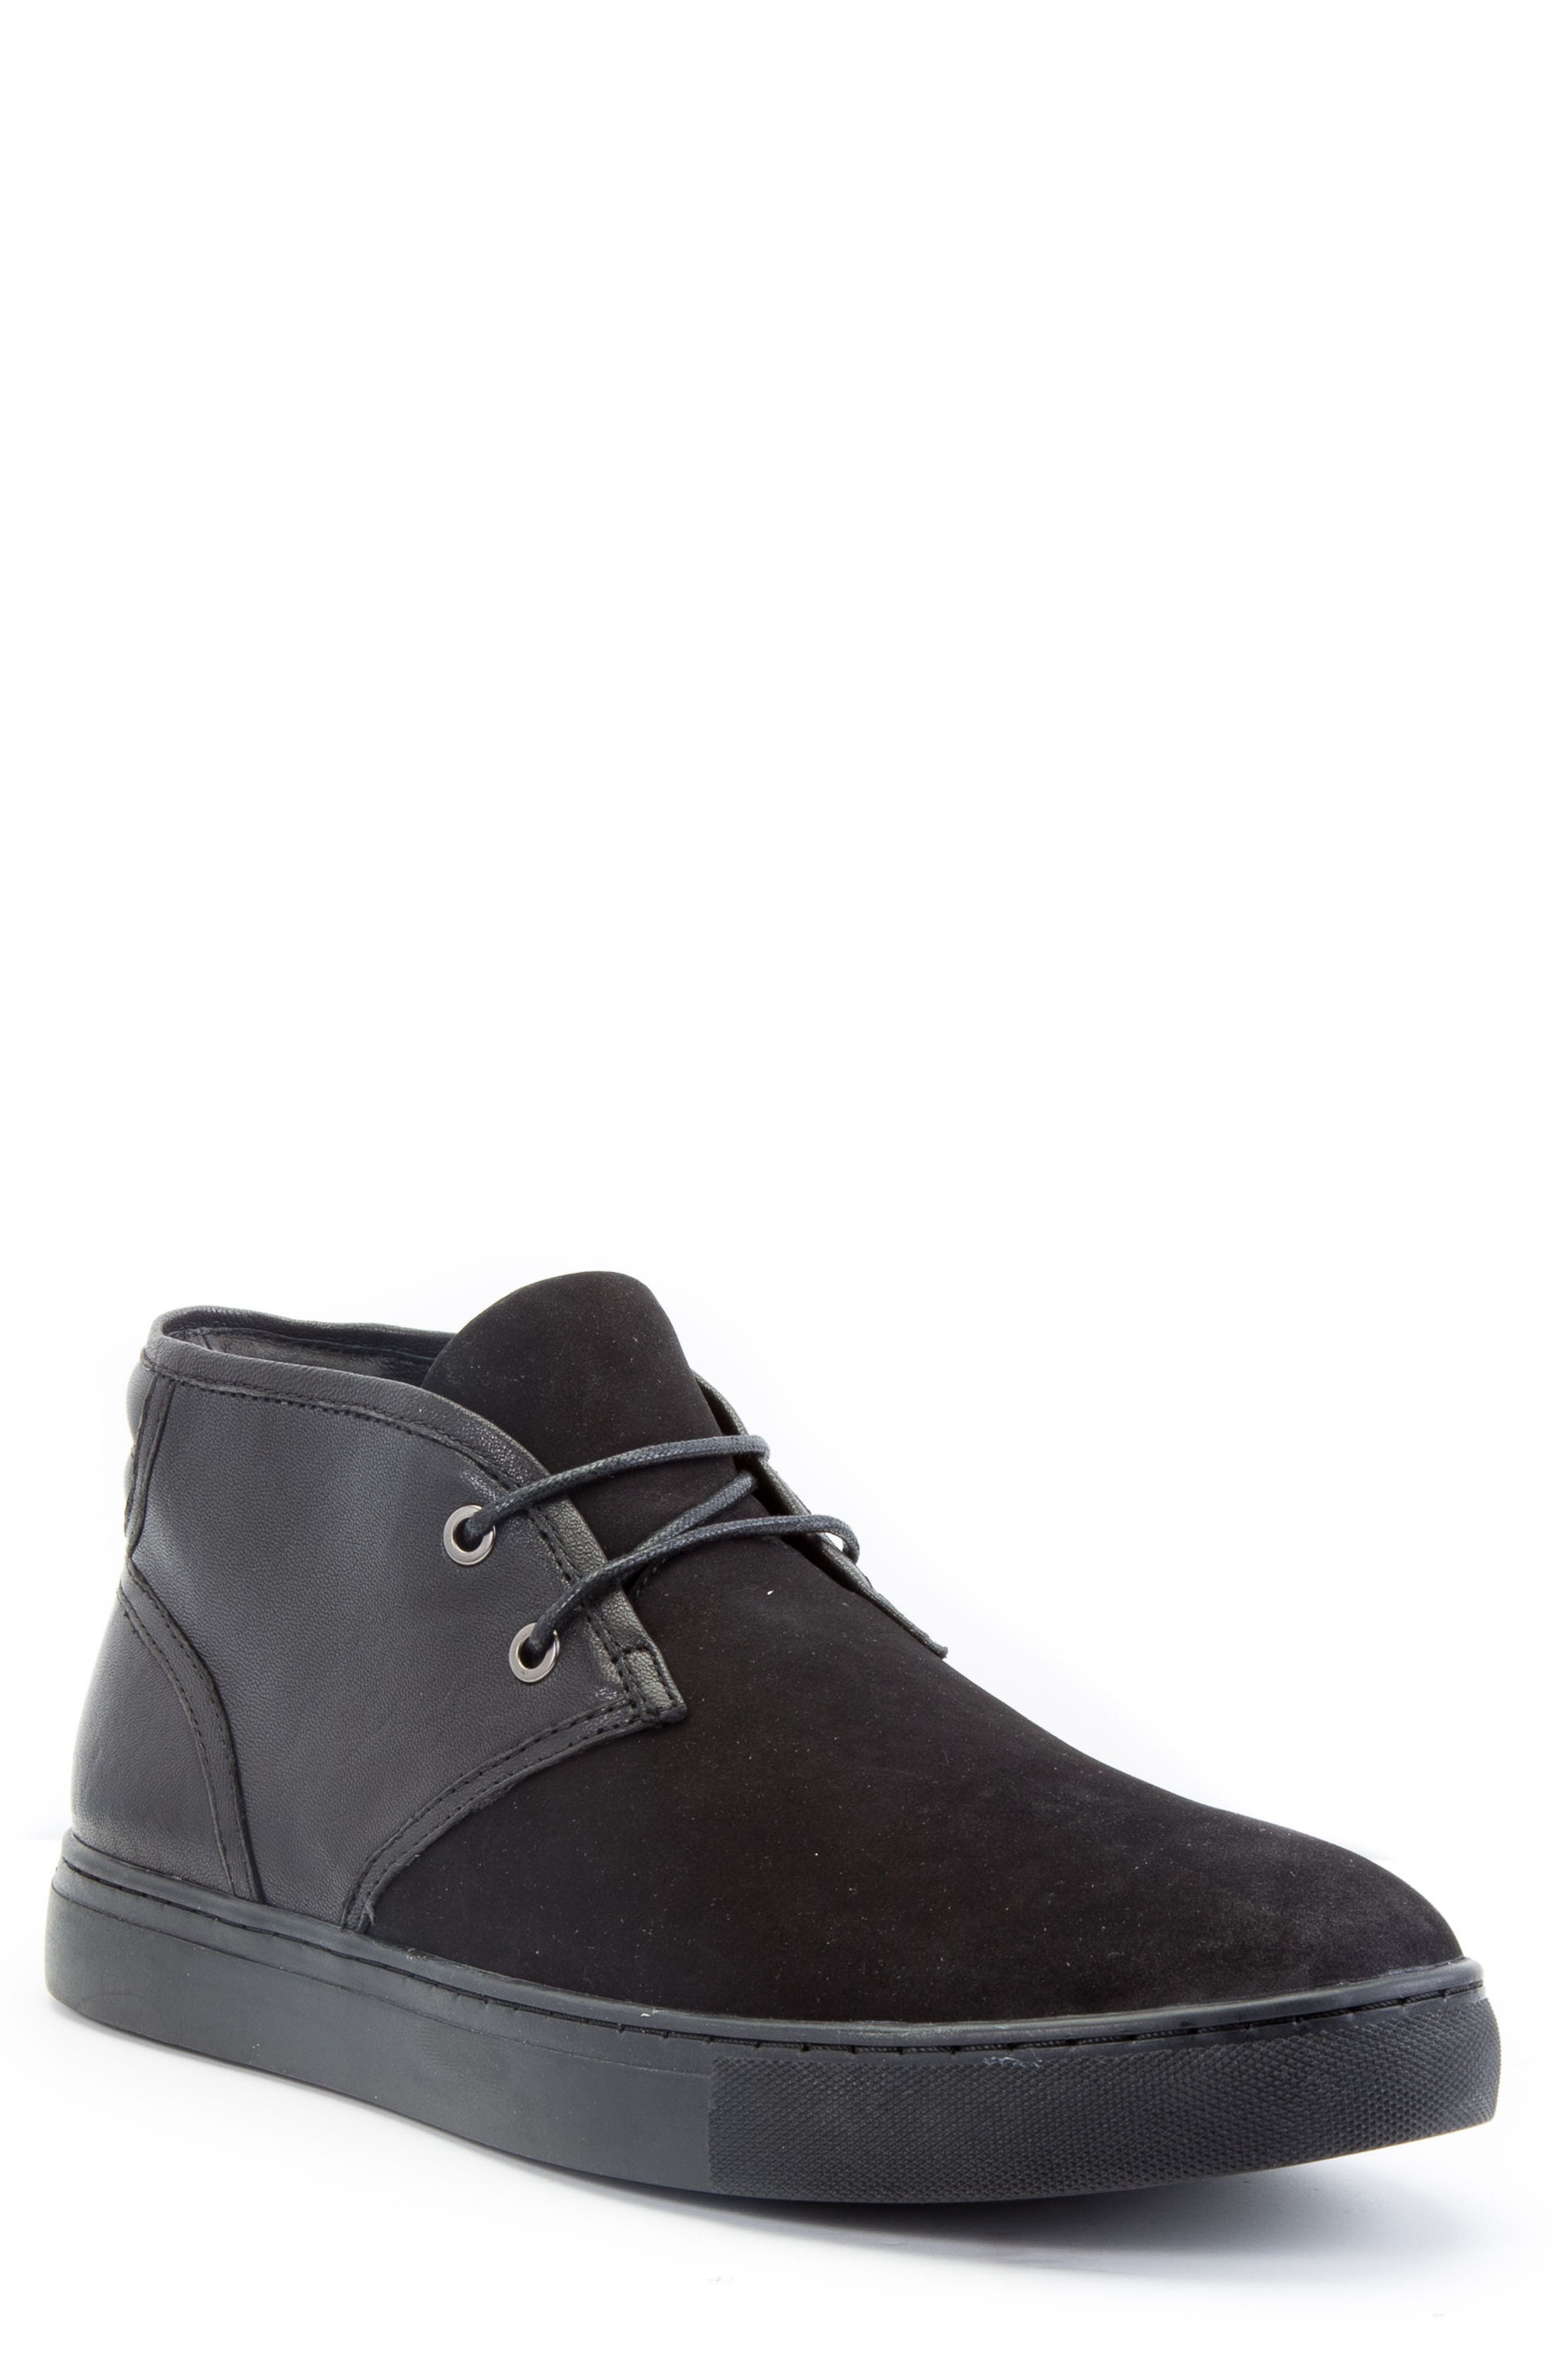 Catlett Chukka Sneaker,                         Main,                         color, Black Suede/ Leather